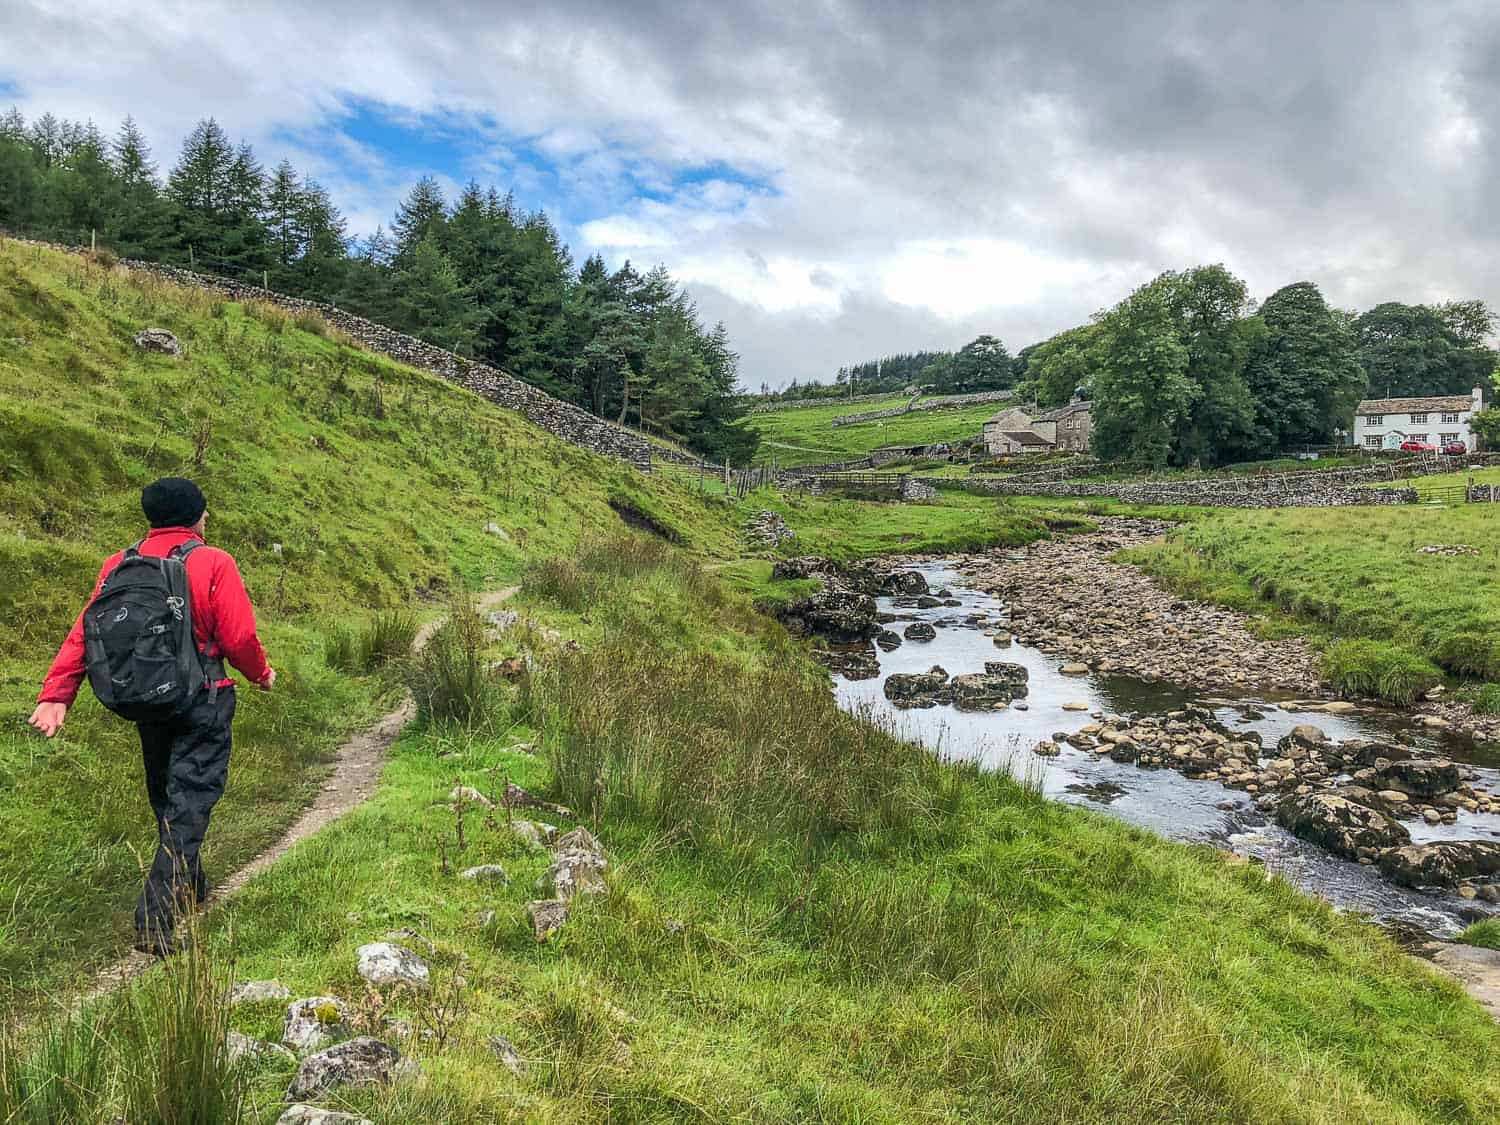 Dales Way packing list - what we wore on the Dales Way hike in northern England